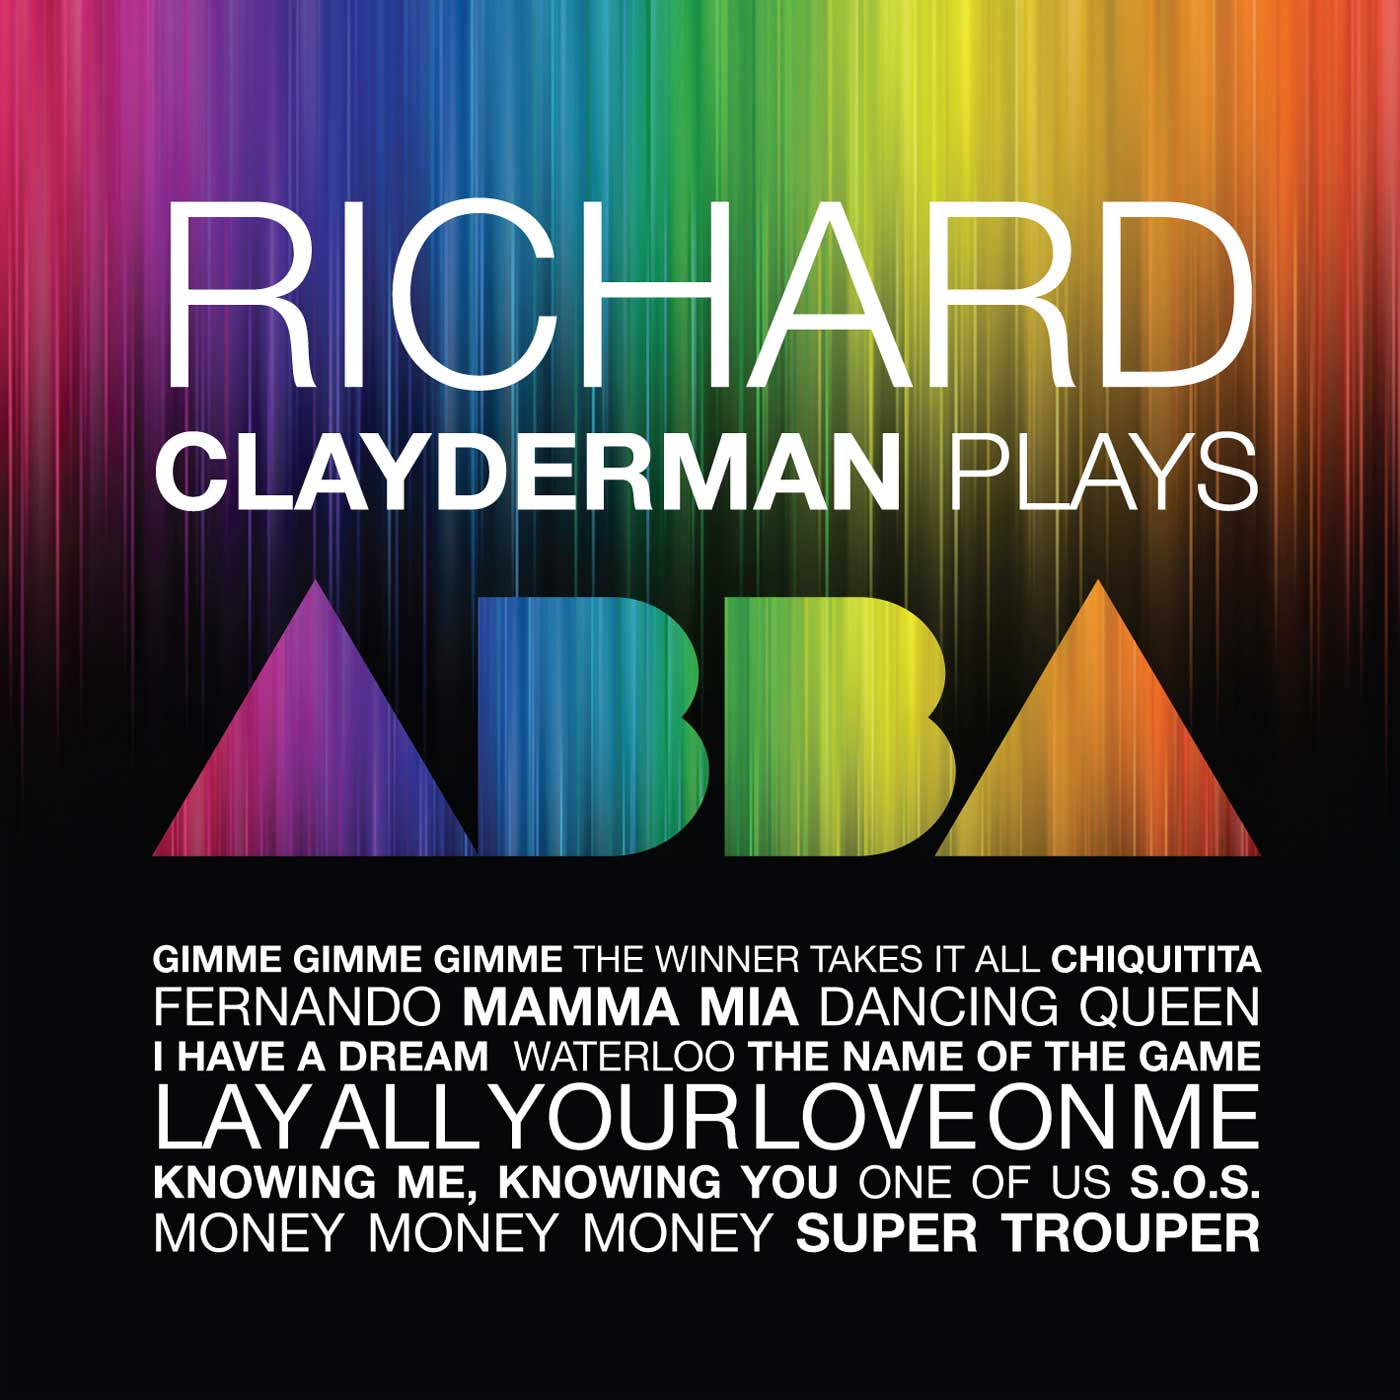 FANFARE096---RICHARD-CLAYDERMAN---PLAYS-ABBA.jpg